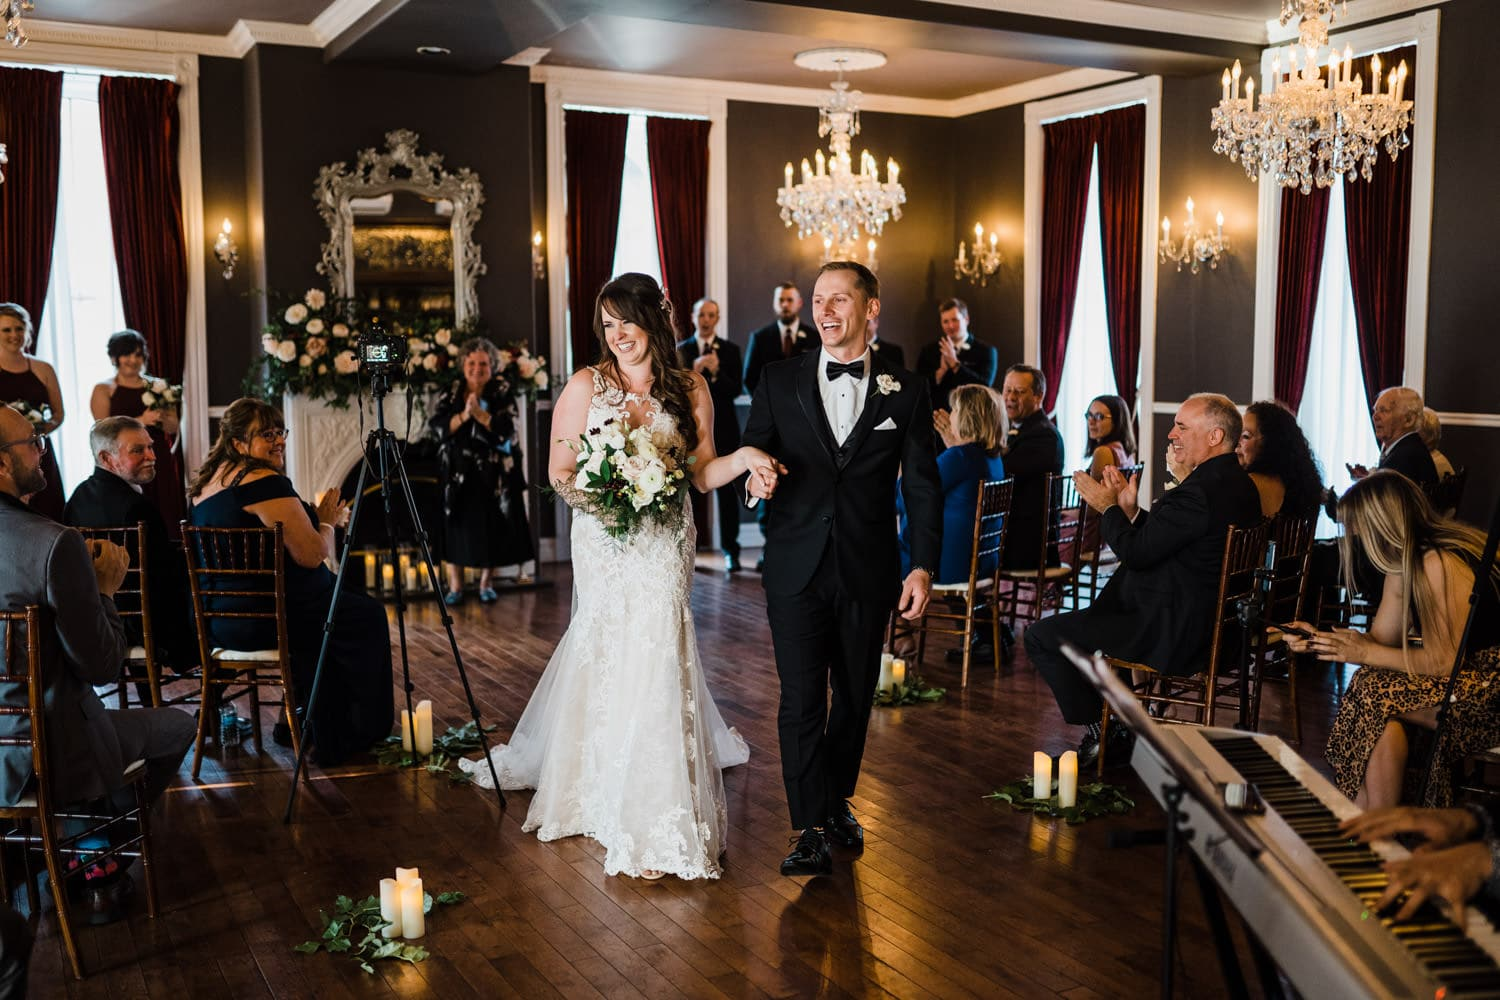 bride and groom walk down aisle after ceremony - the grand hotel wedding in carleton place